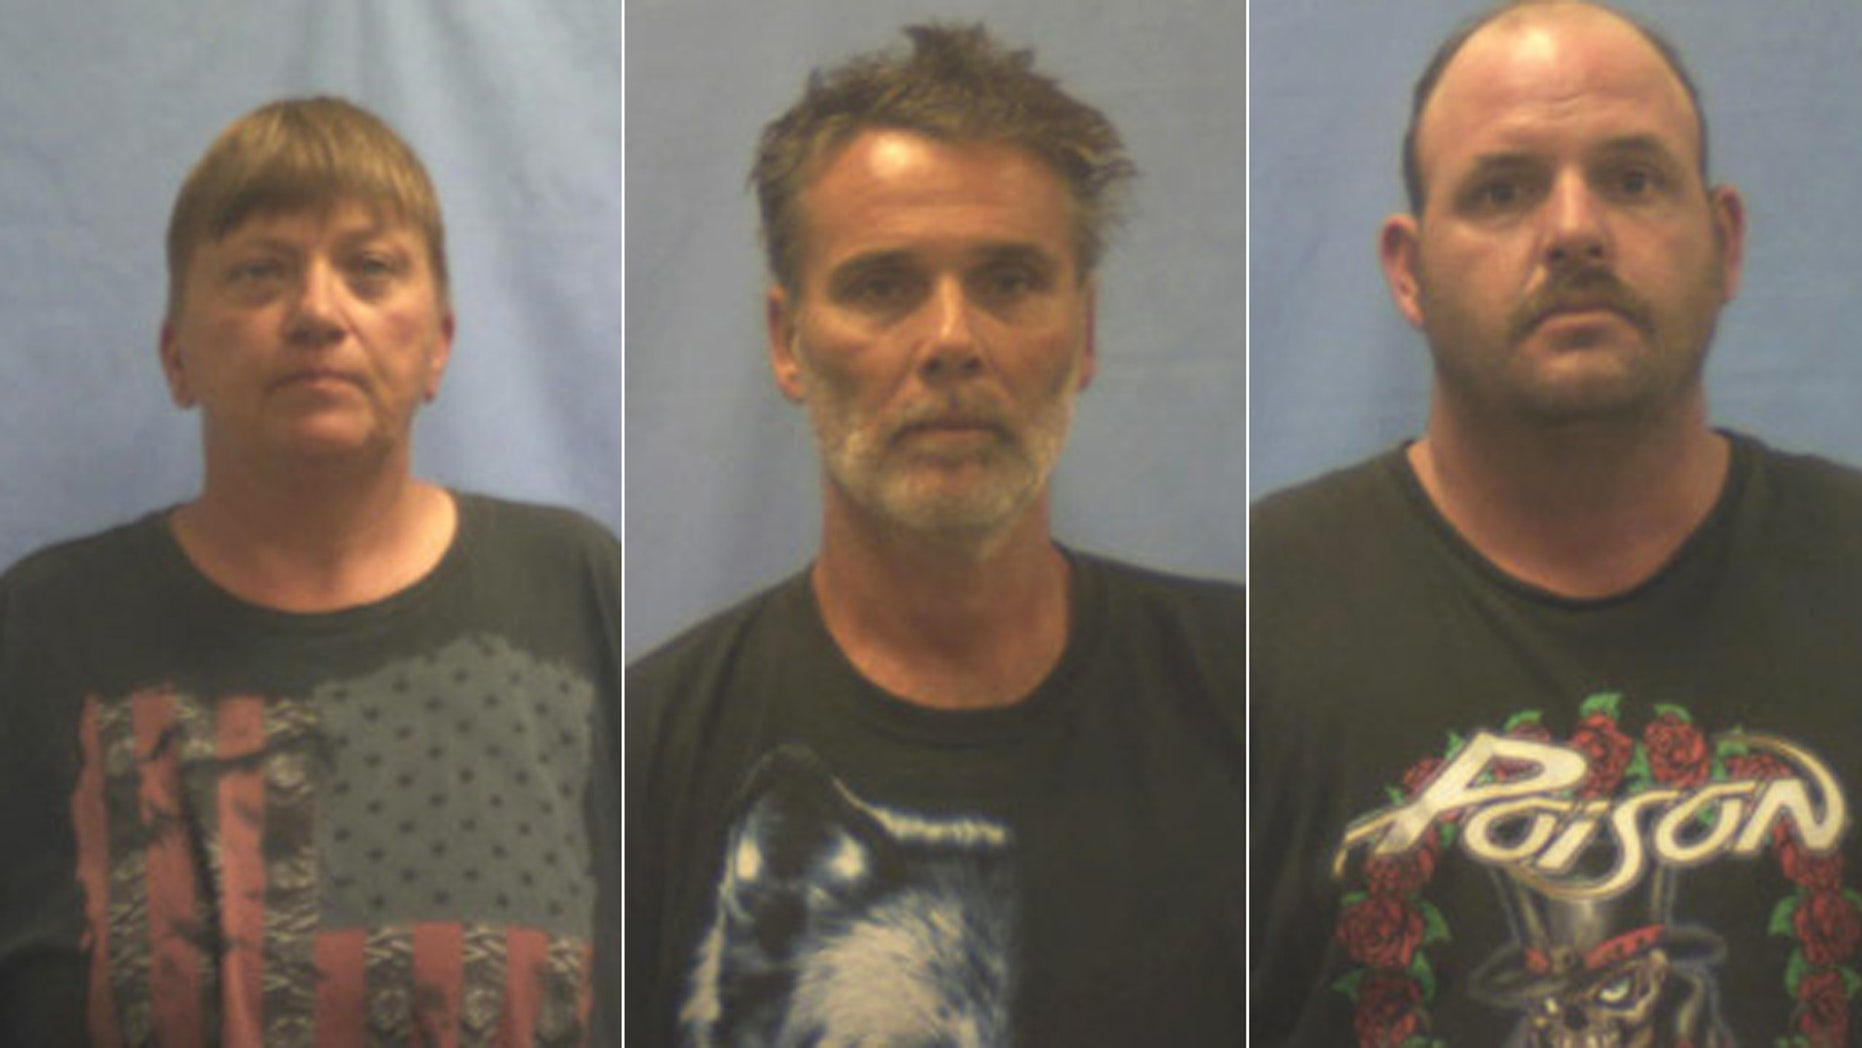 Kimberly Younger, Michael Fowler and Rusty Frasier are charged with murder for the deaths of two fair workers. (Van Buren Police)